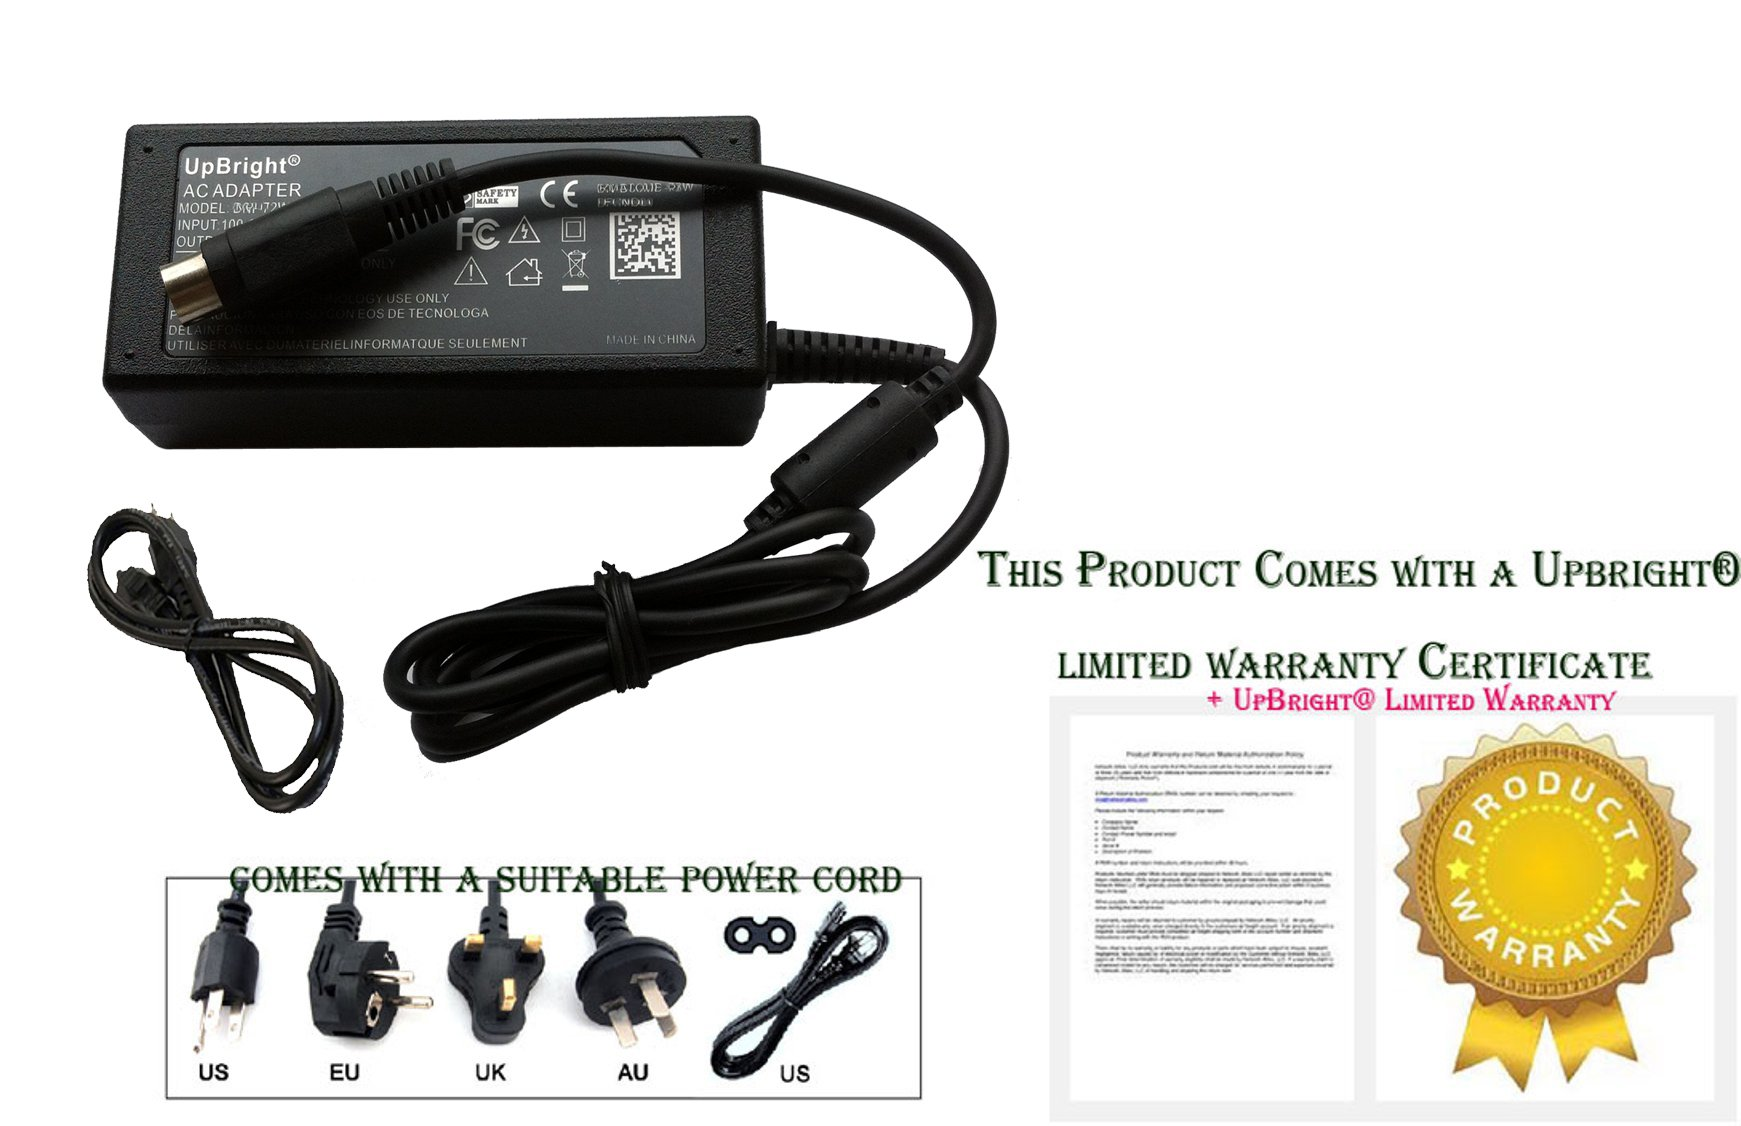 UpBright NEW Global 24V 3-Pin DIN AC / DC Adapter For Touch Dynamic Breeze BR-PRINTERBASE & PR-T25S T25 POS Base Thermal Receipt Printer 24VDC Power Supply Cord Cable PS Charger Mains PSU